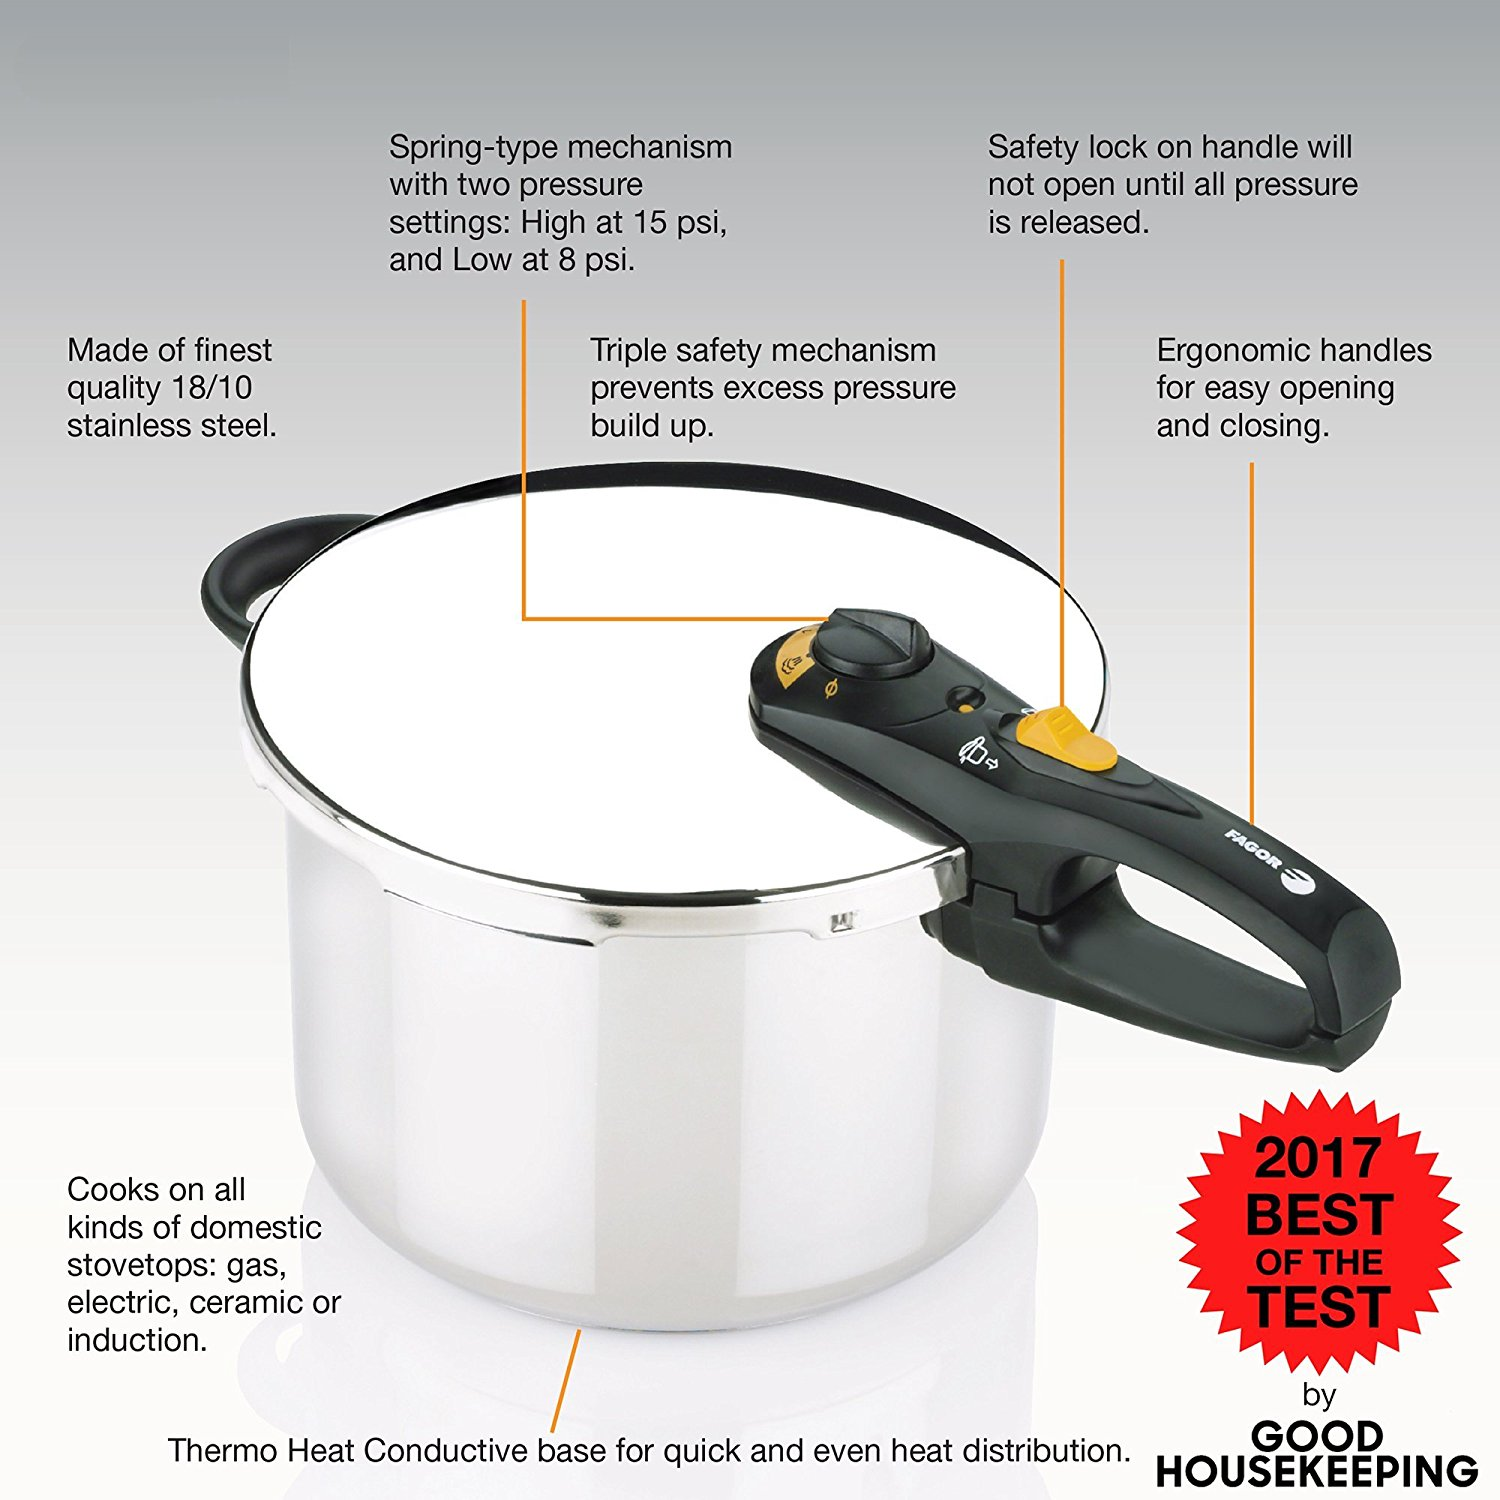 Fagor DUO 8 Quart - Multi-Setting Pressure Cooker and Canner with Accessories, Polished Stainless Steel - 918060787